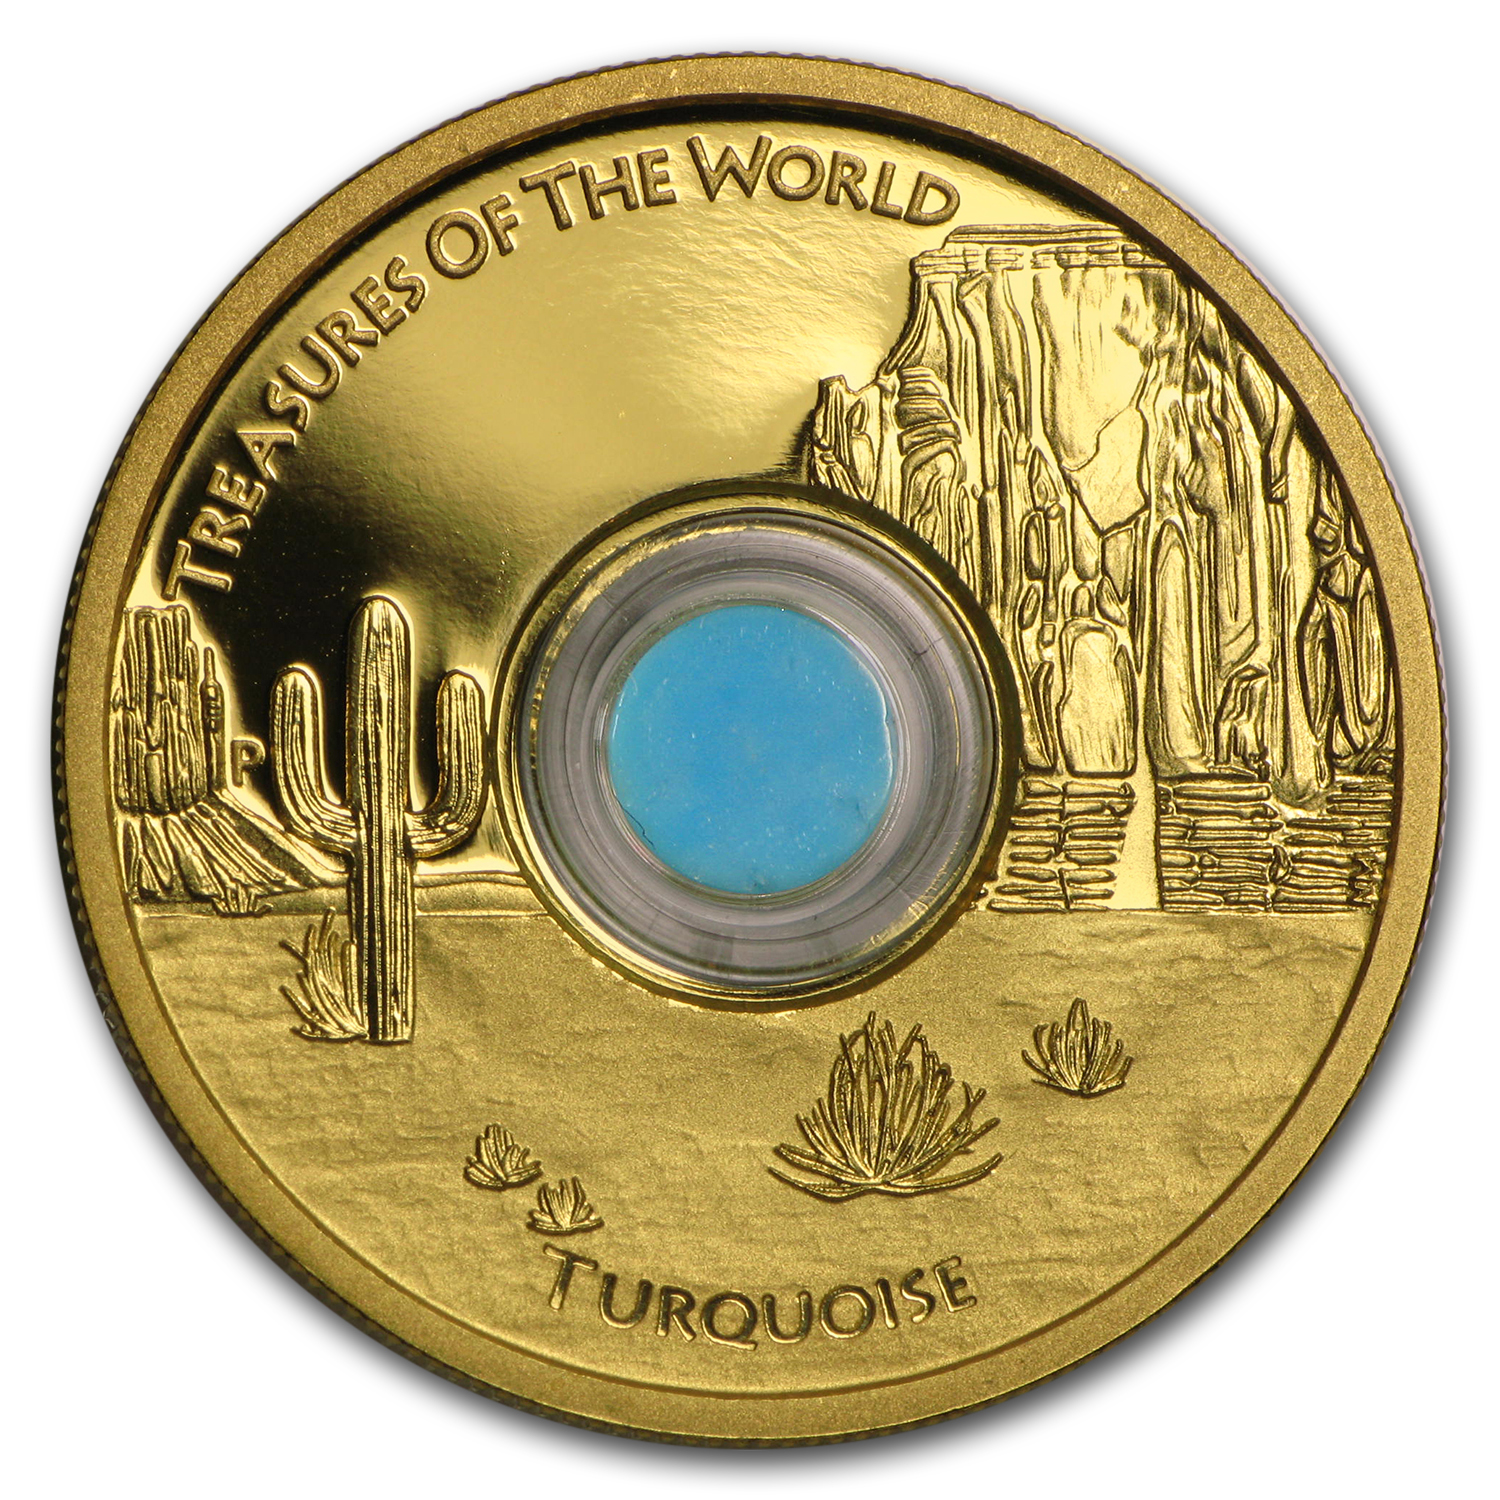 2015 AUS 1 oz Gold Treasures of the World Locket (North America)